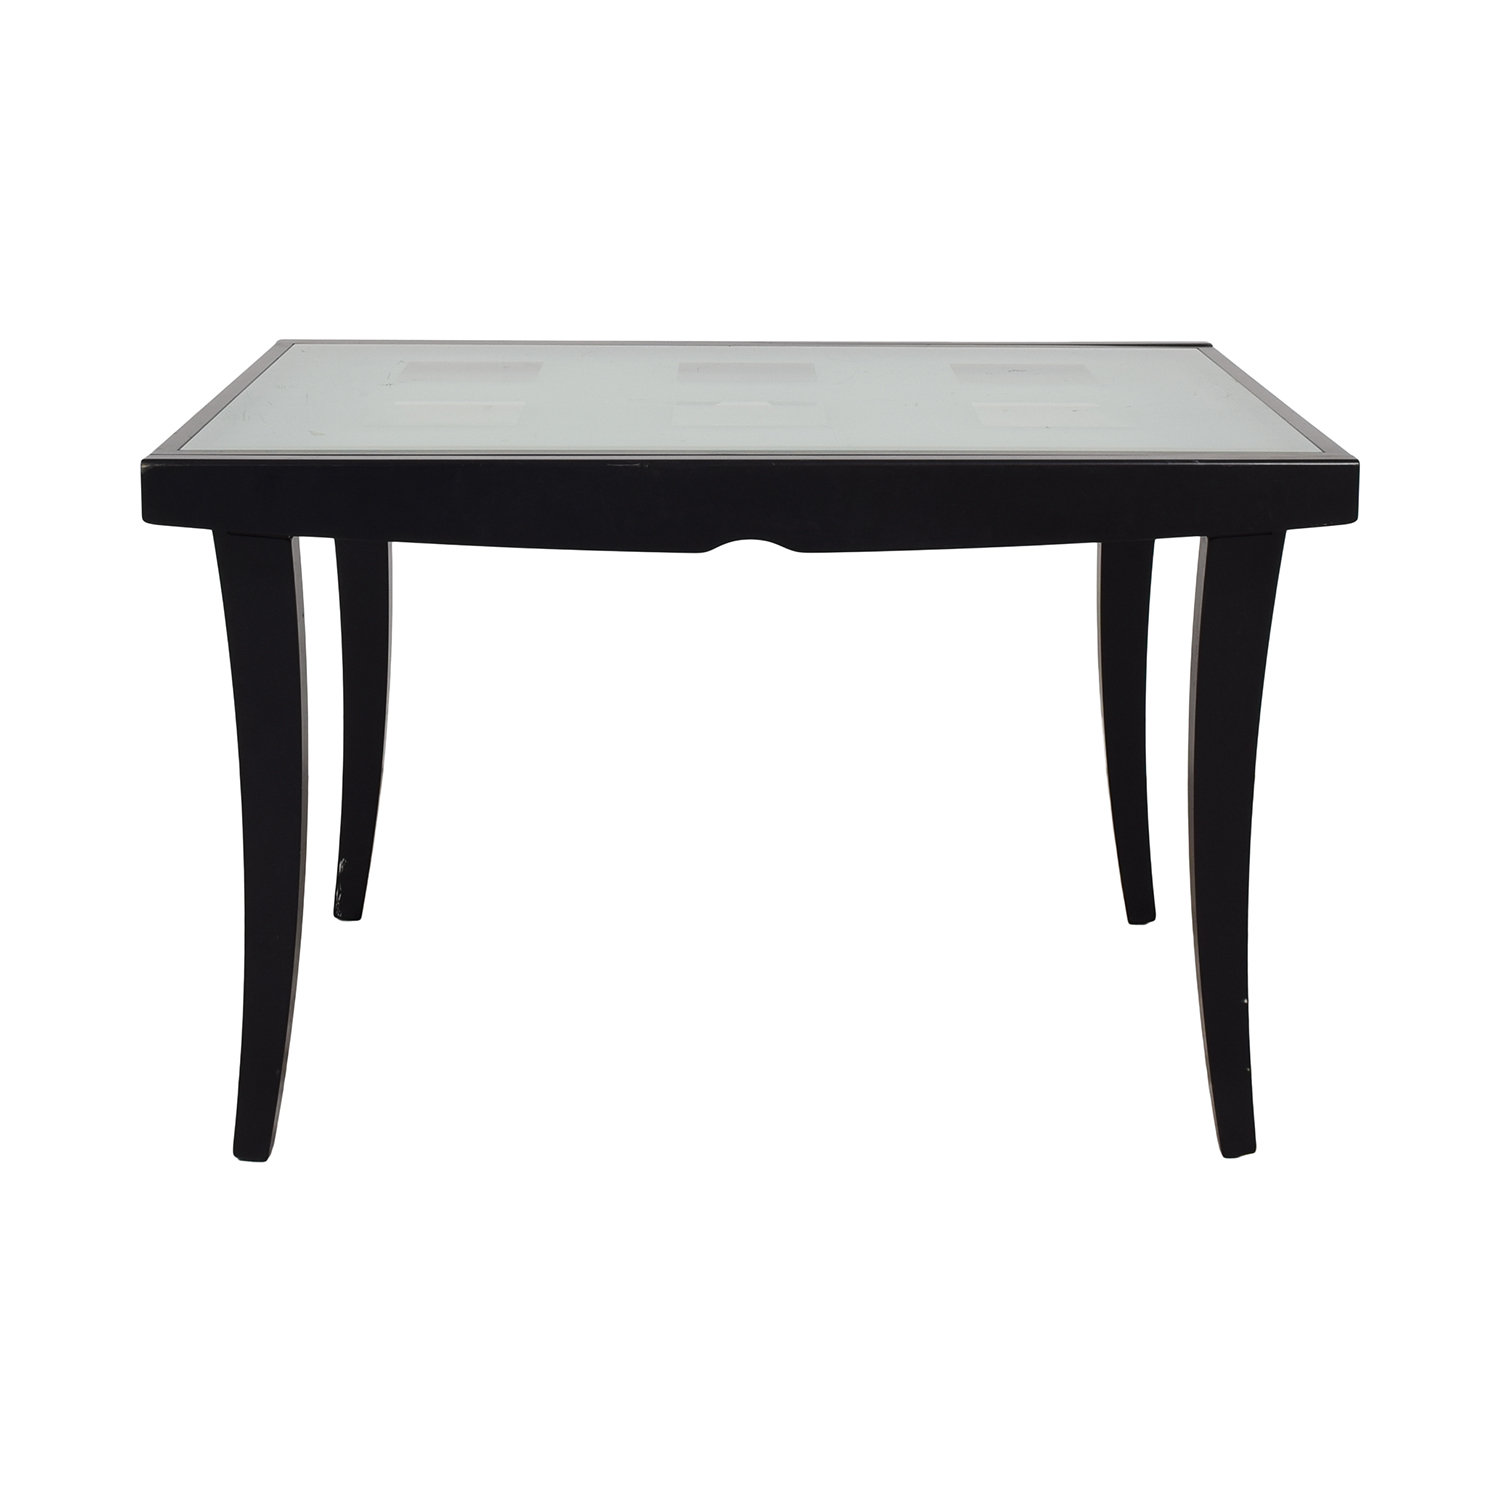 70 Off Calligaris Calligaris Bon Ton Dining Table Tables